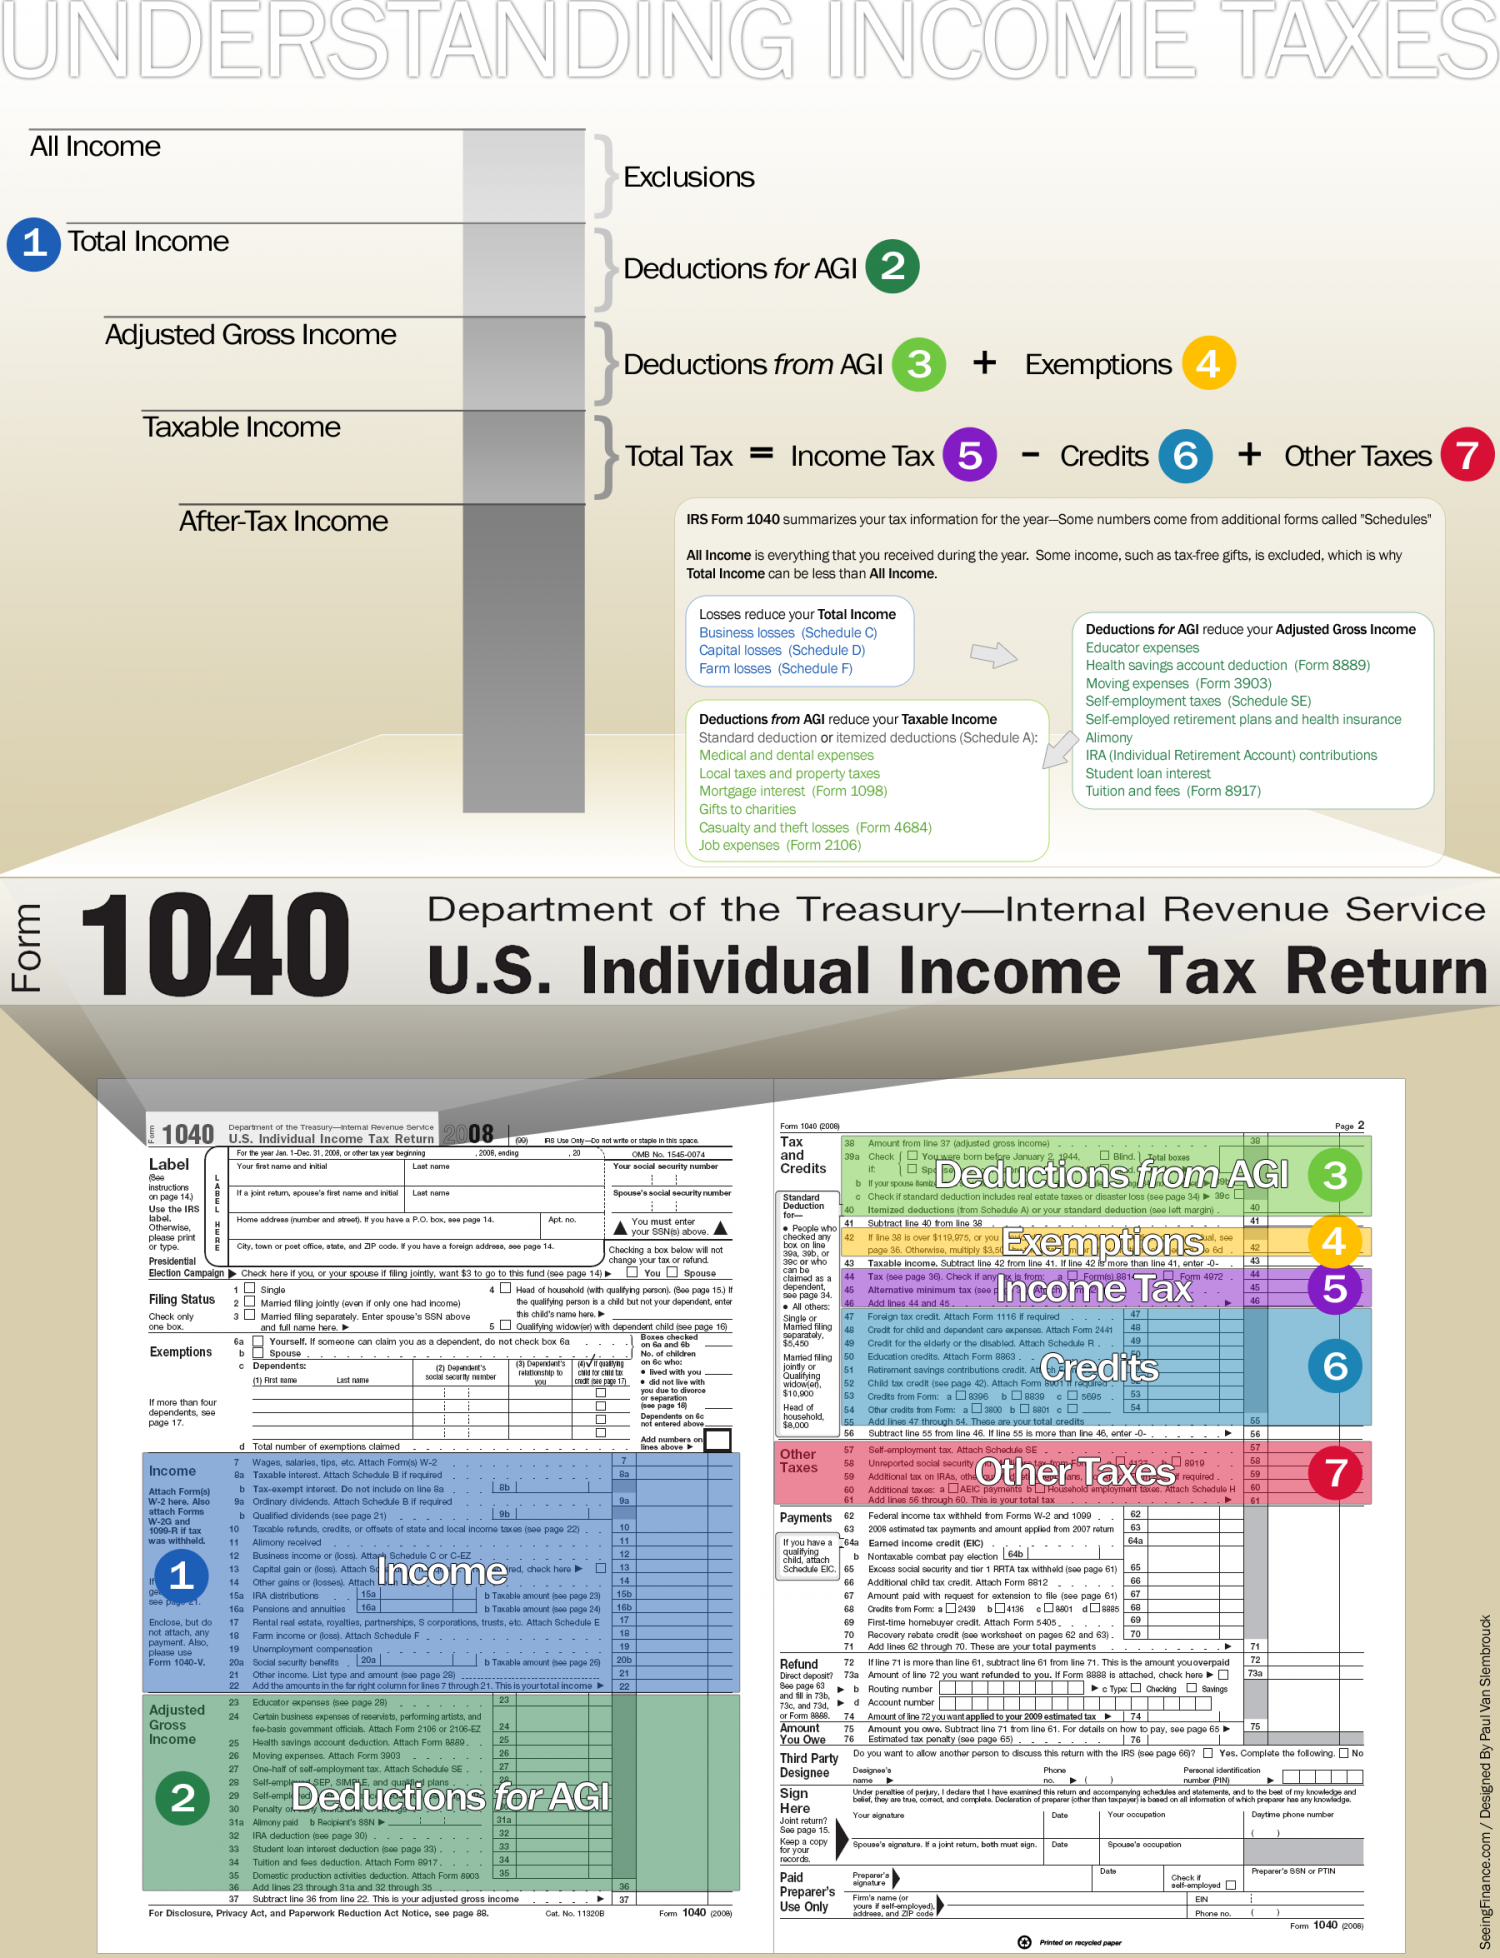 Understanding Income Taxes Infographic